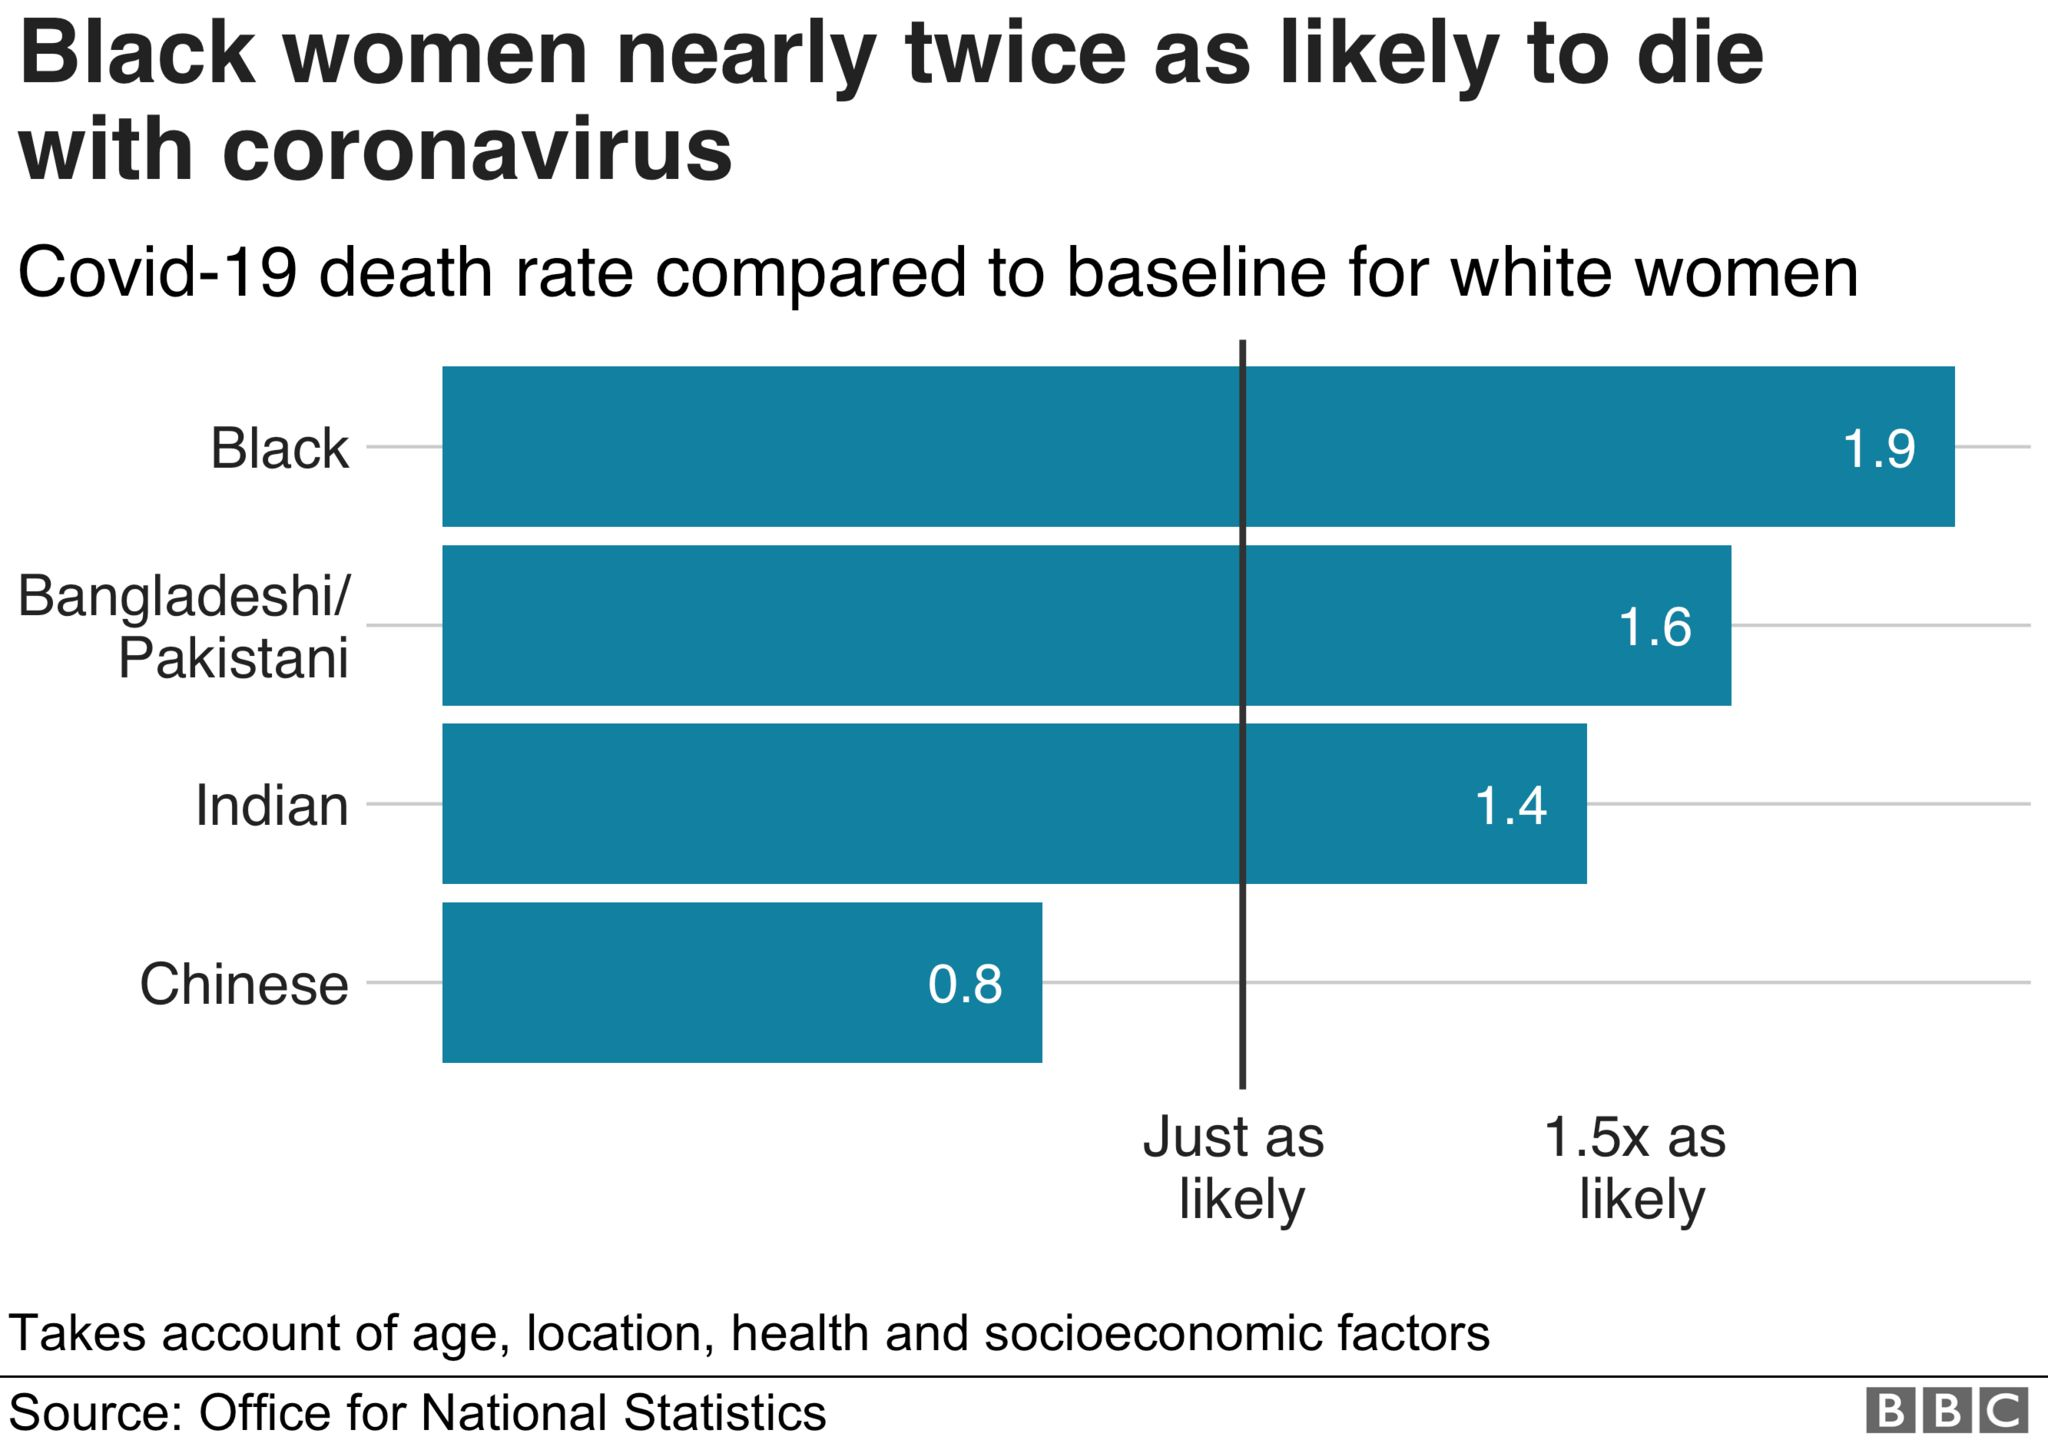 Chart showing comparison of Covid-19 death rate for ethnic minority women and white women